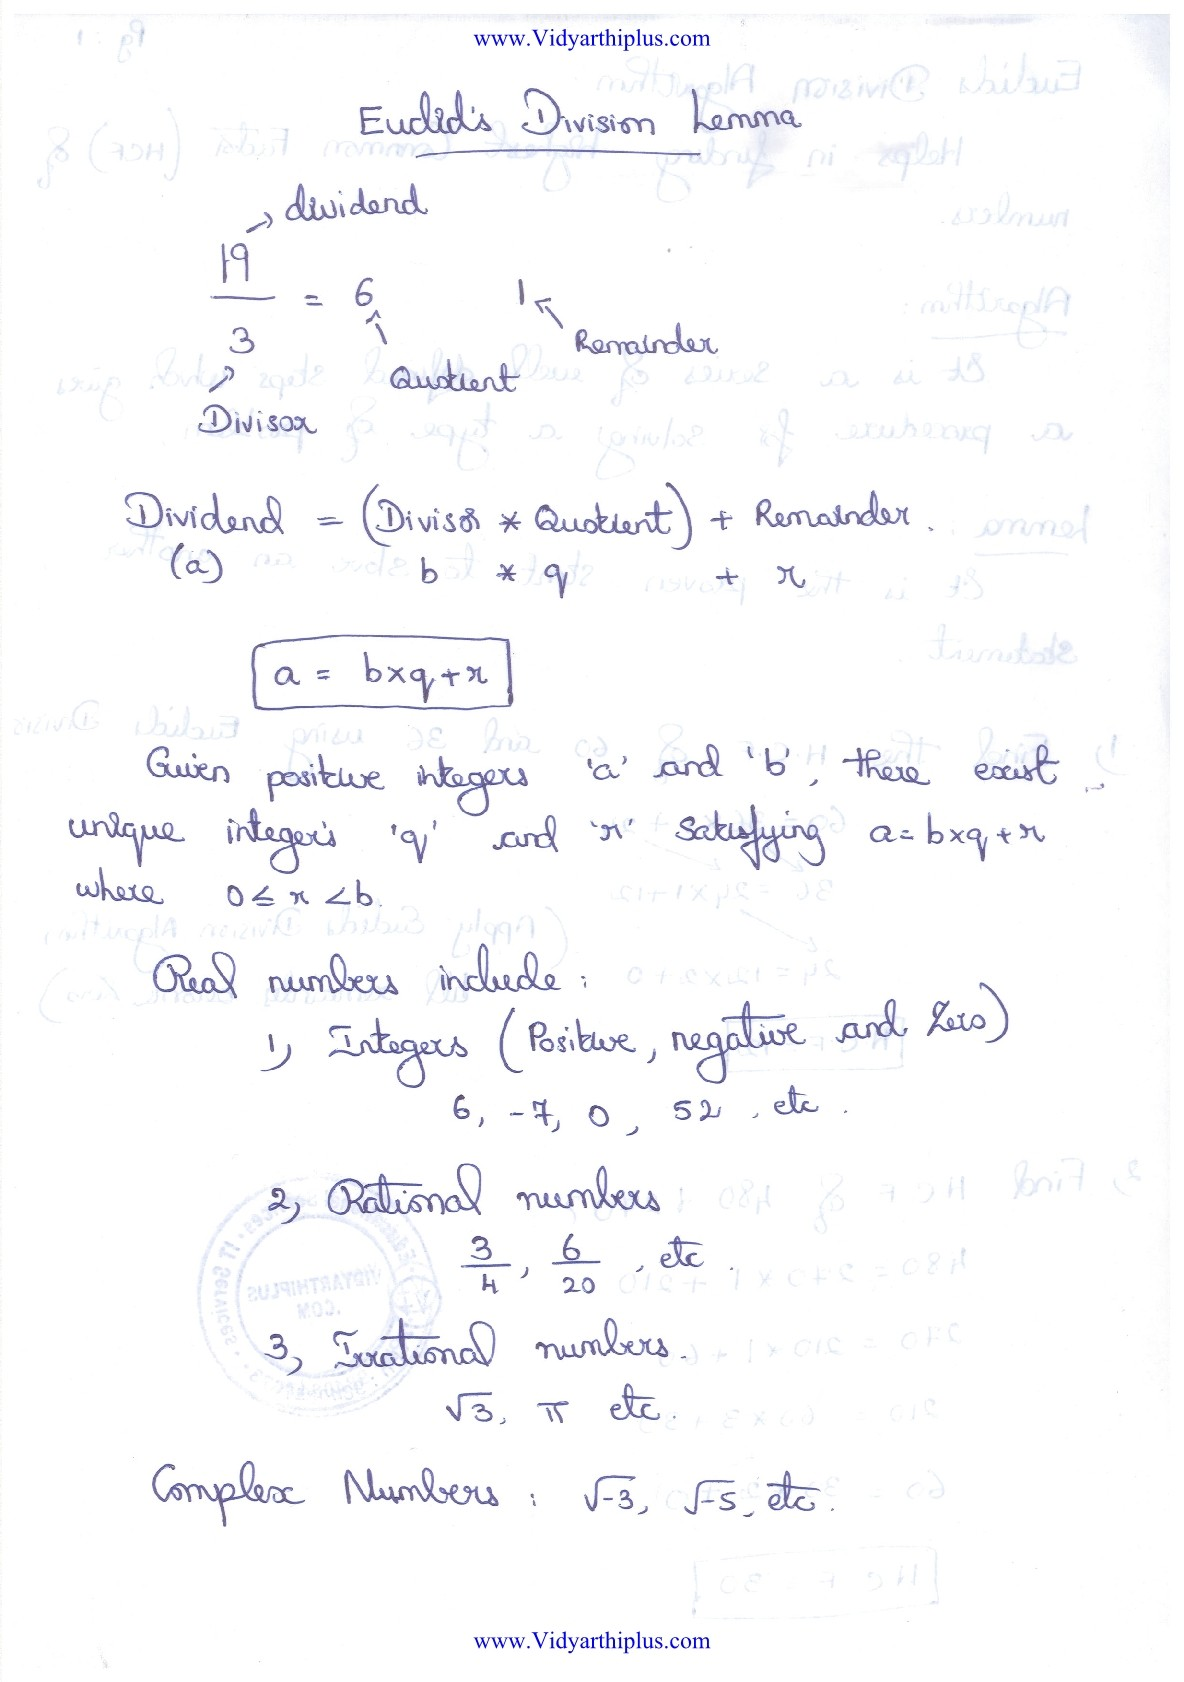 Number Systems : Euclid's division lemma Lecture Notes and Solved Problems